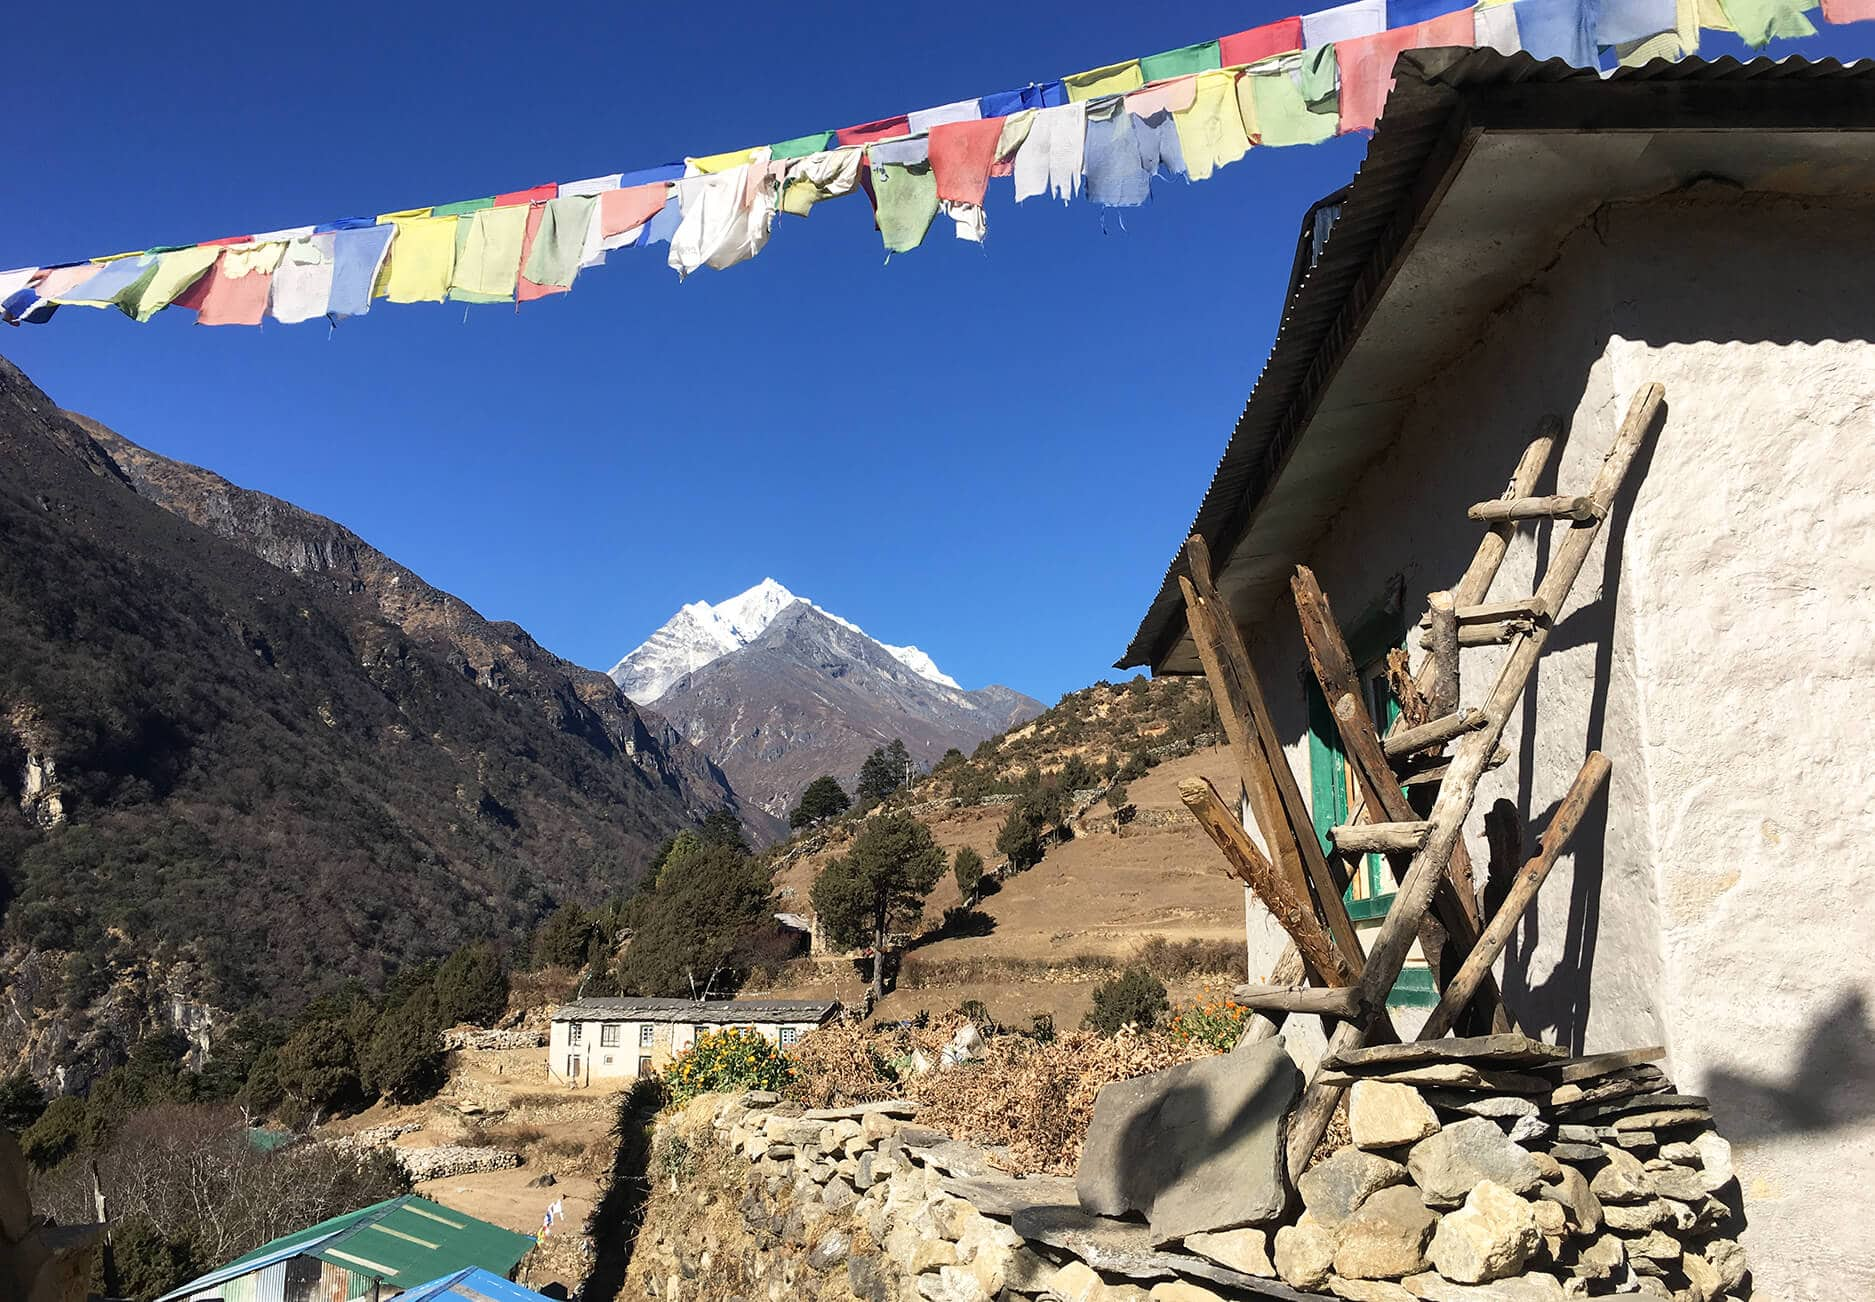 Travel bloggers reveal their most unforgettable travel experiences - Trekking to Everest Base Camp